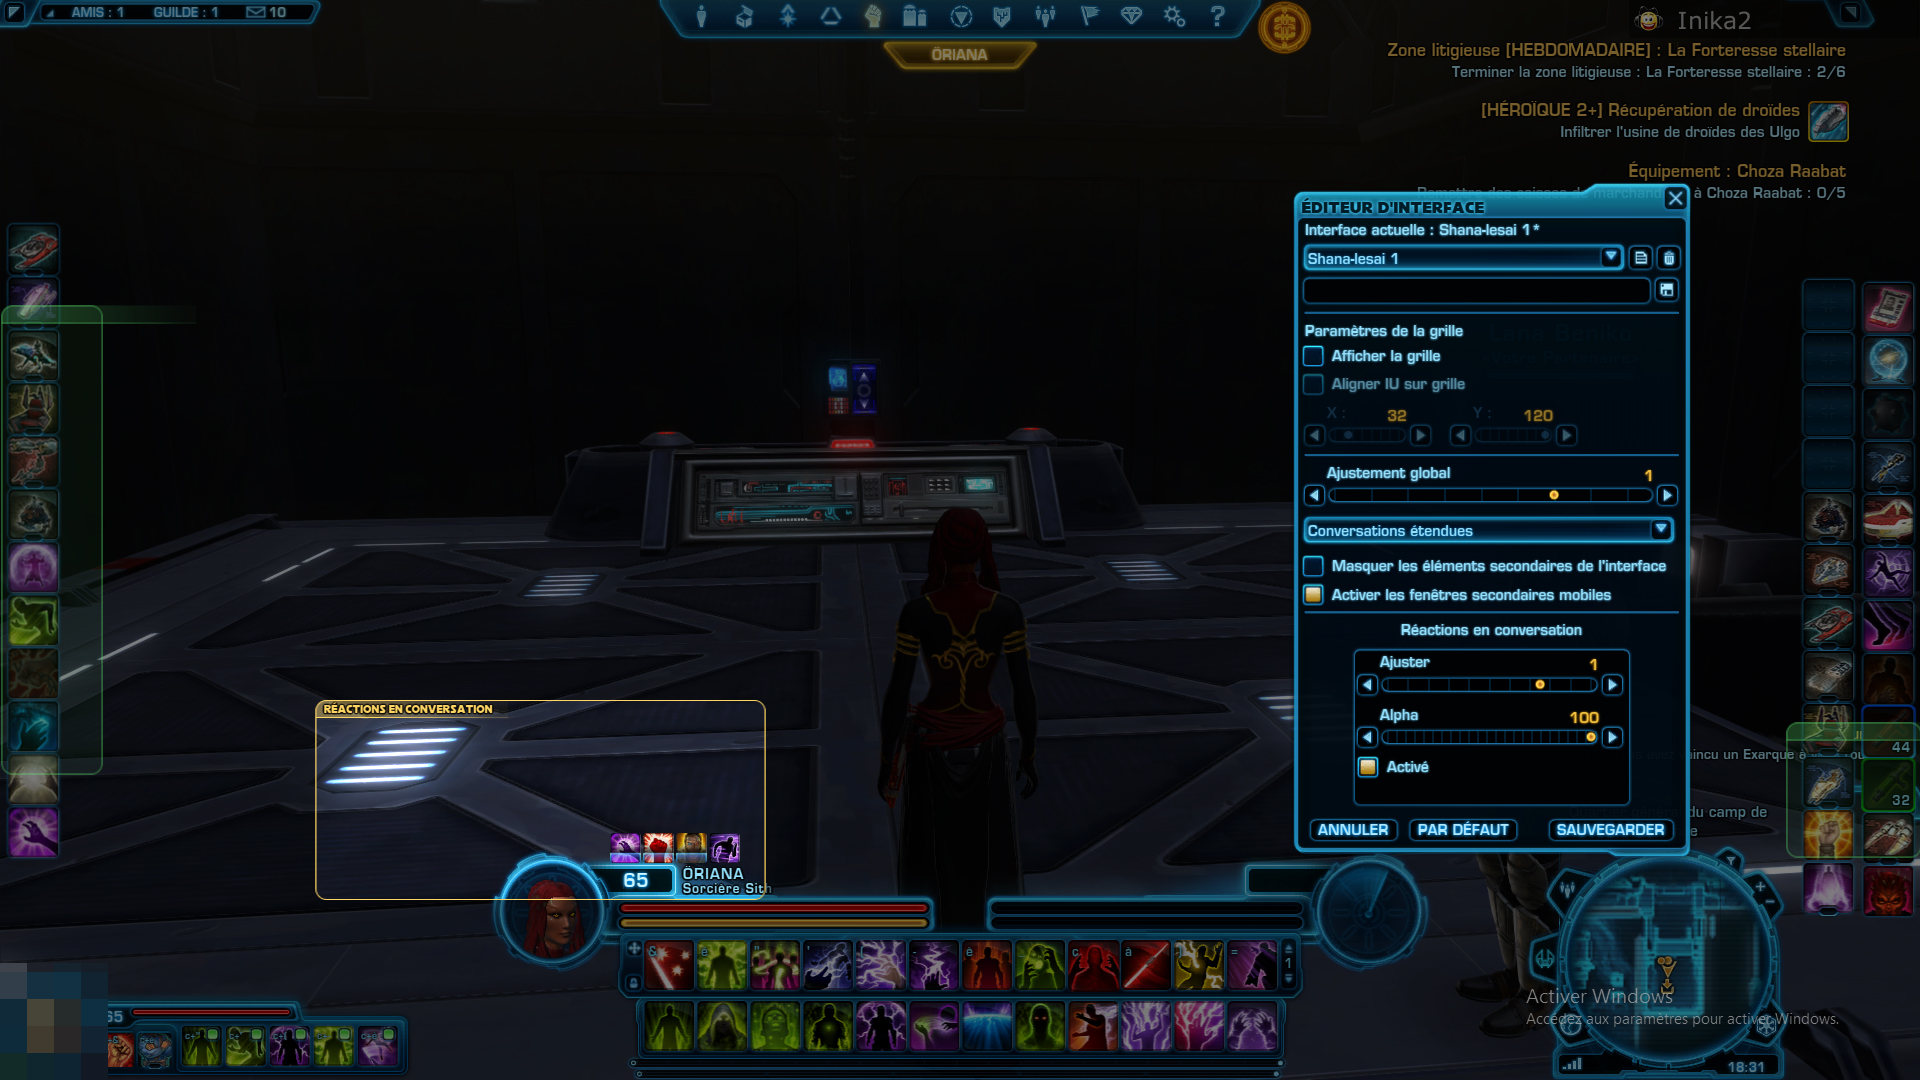 SWTOR 4.0 Chapter 1 Live Preview by Devs - VULKK.com